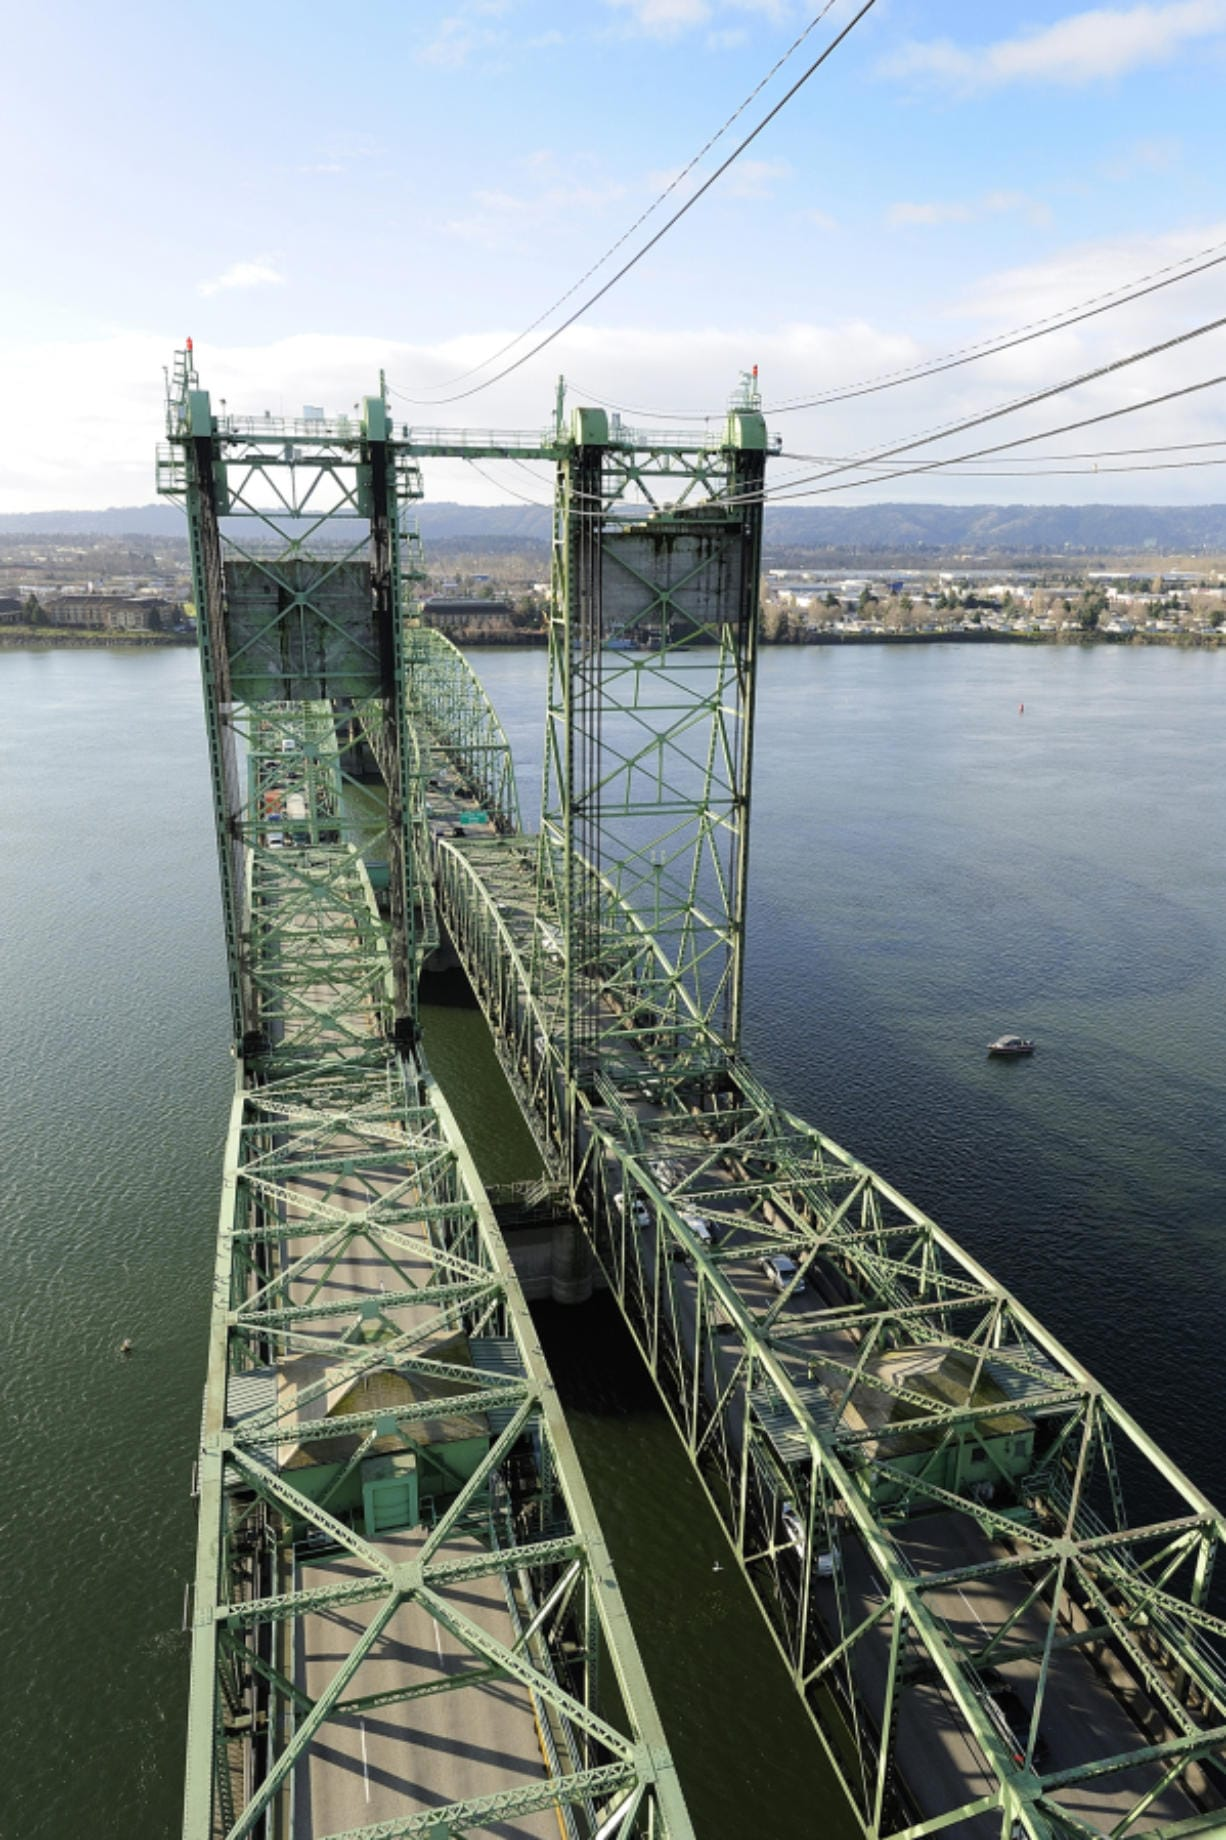 In September, Hamilton Construction Co. of Springfield, Ore., will replace several components of the Interstate 5 Bridge's lifting mechanism for the northbound span, which can be seen to the left in this photo looking south toward Oregon. (Columbian files)